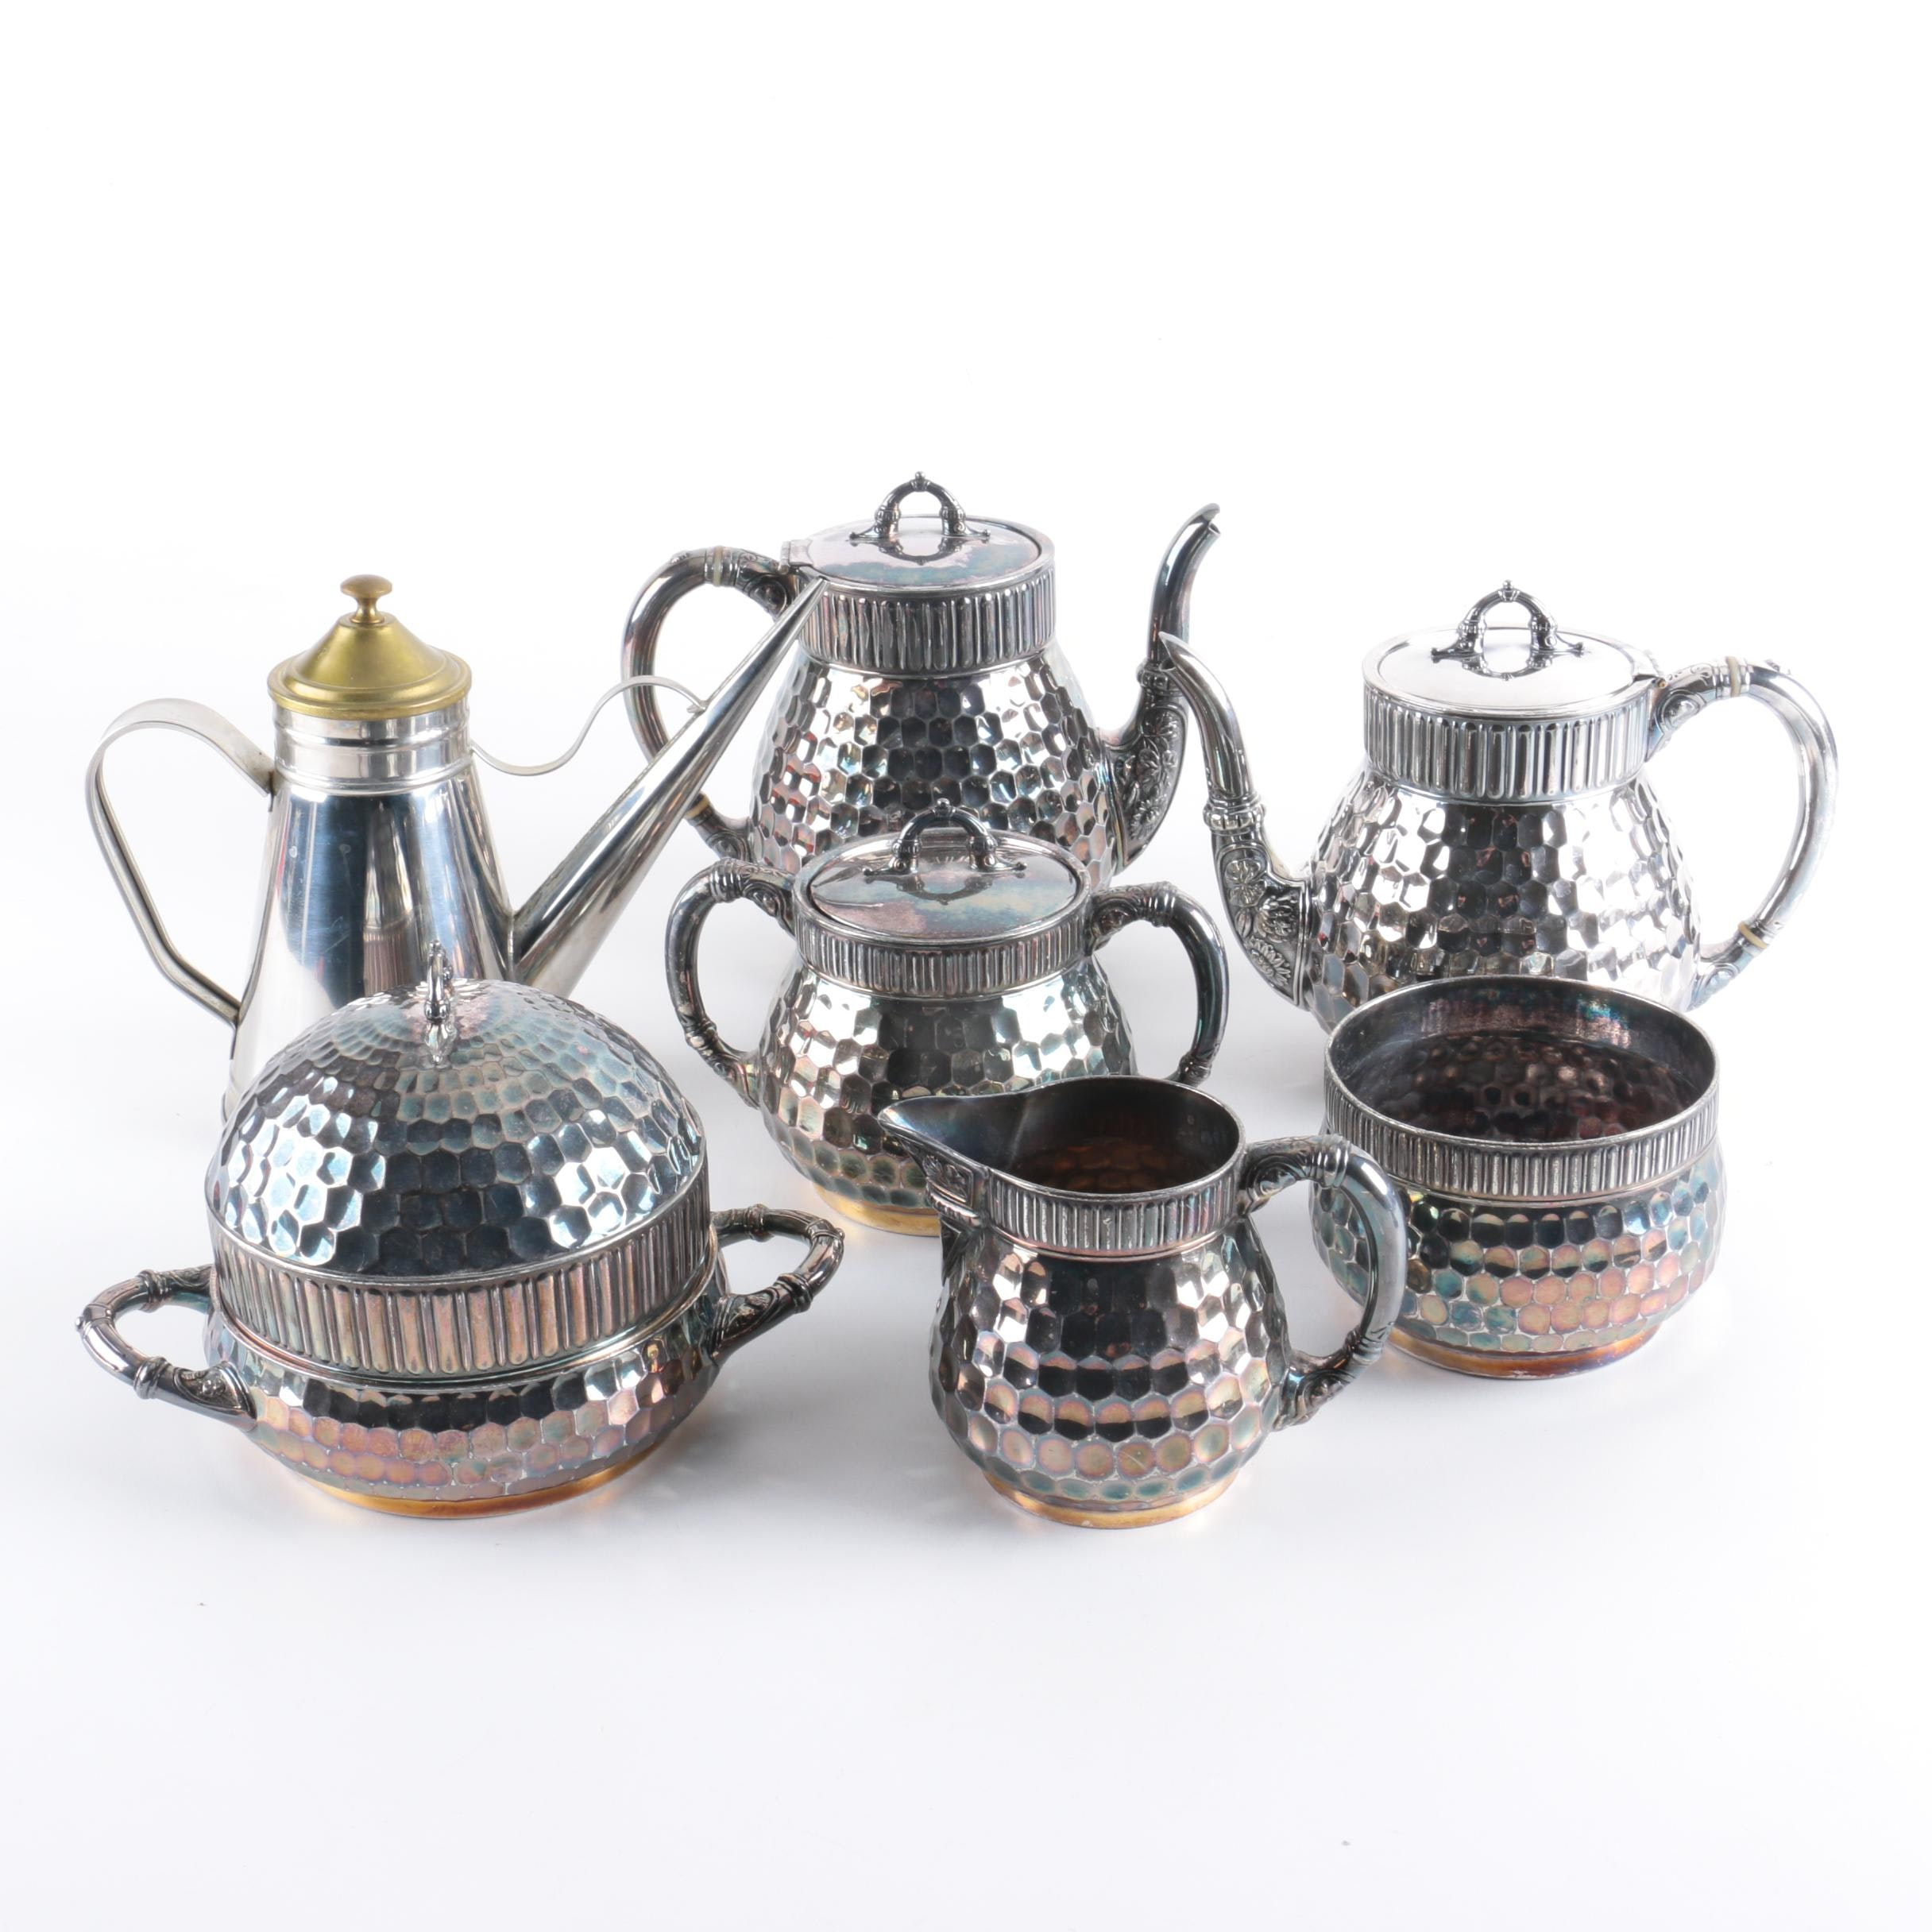 """Vintage Meriden Silver Plate Co. Silver Plate """"Honeycomb"""" Coffee and Tea Service"""